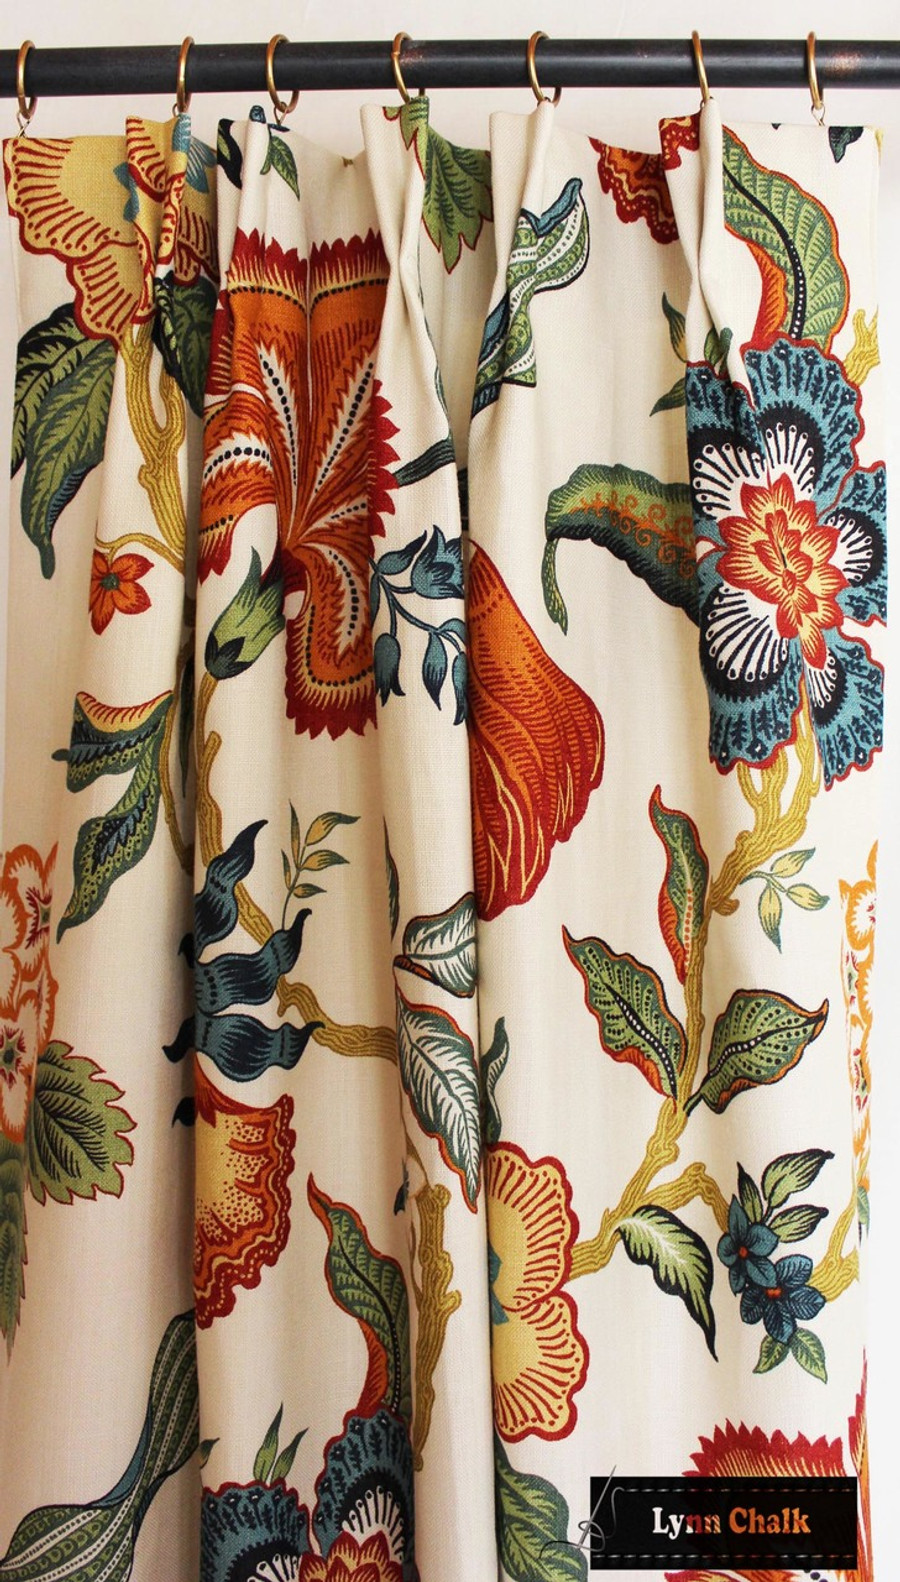 Schumacher Celerie Kemble Hothouse Flowers Custom Drapes (shown in Spark-comes in other Colors)